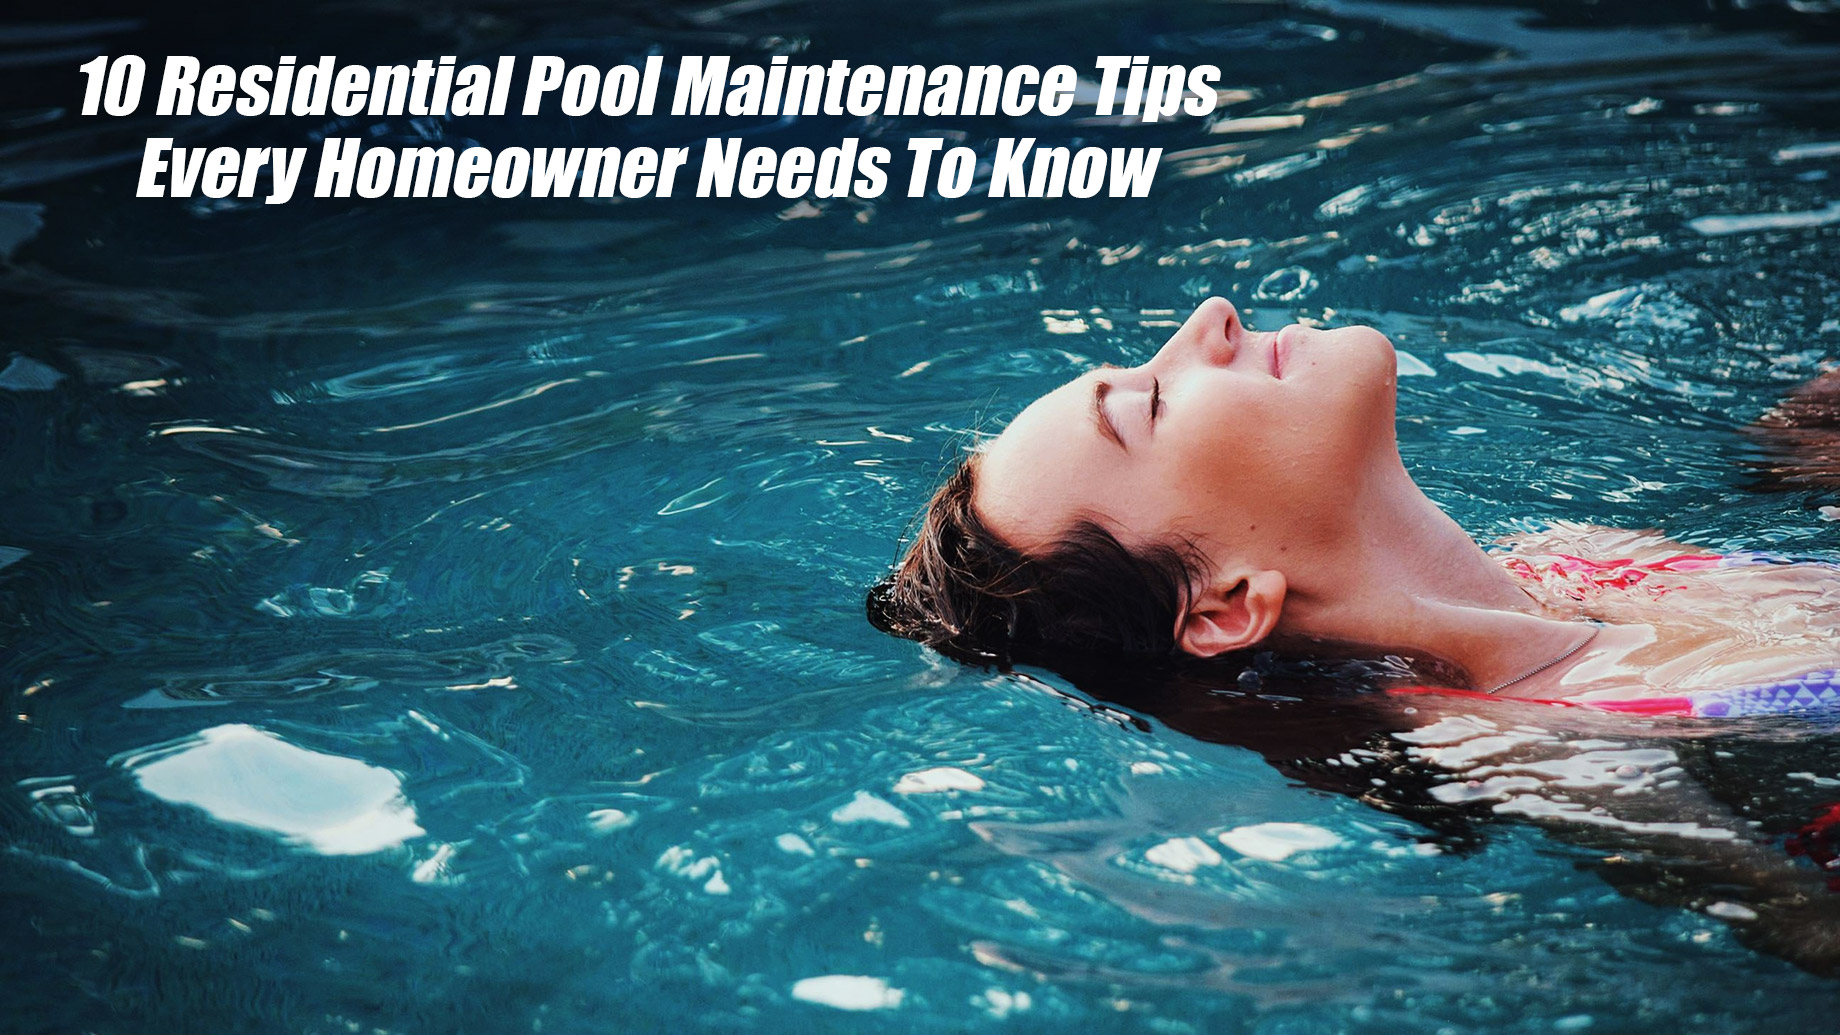 10 Residential Pool Maintenance Tips Every Homeowner Needs To Know